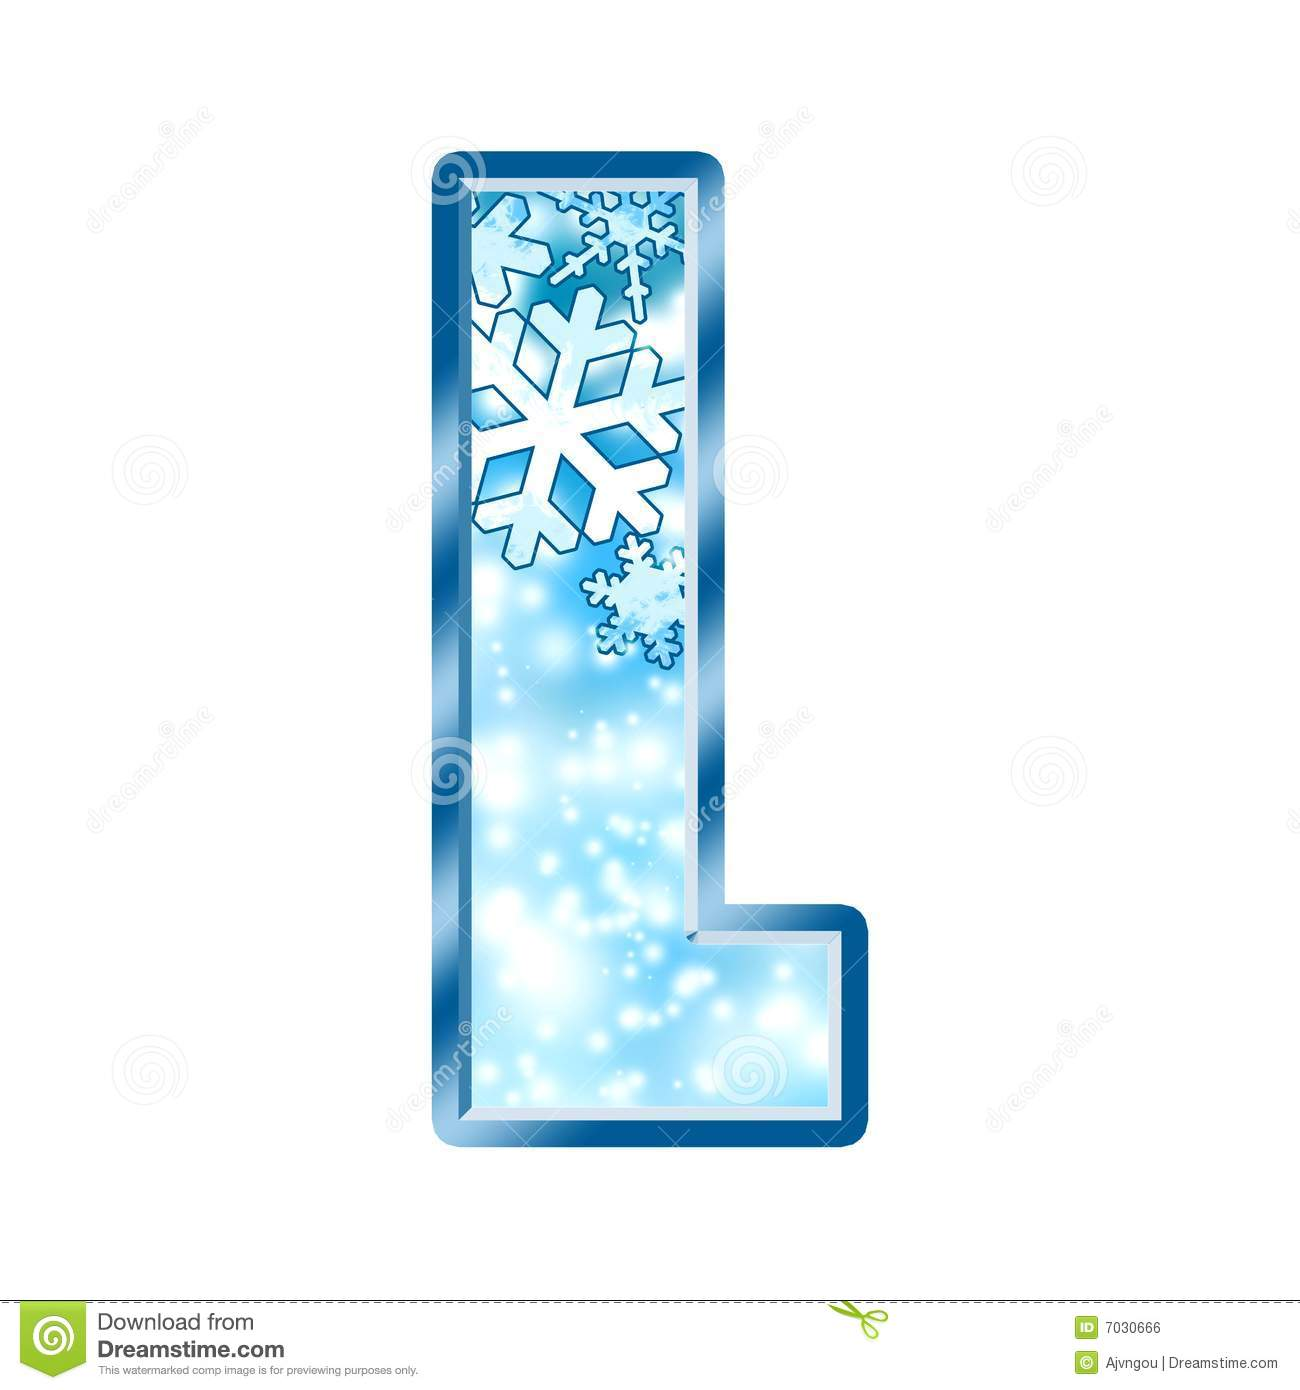 Winter Alphabet Letter L Royalty Free Stock Image - Image: 7030666